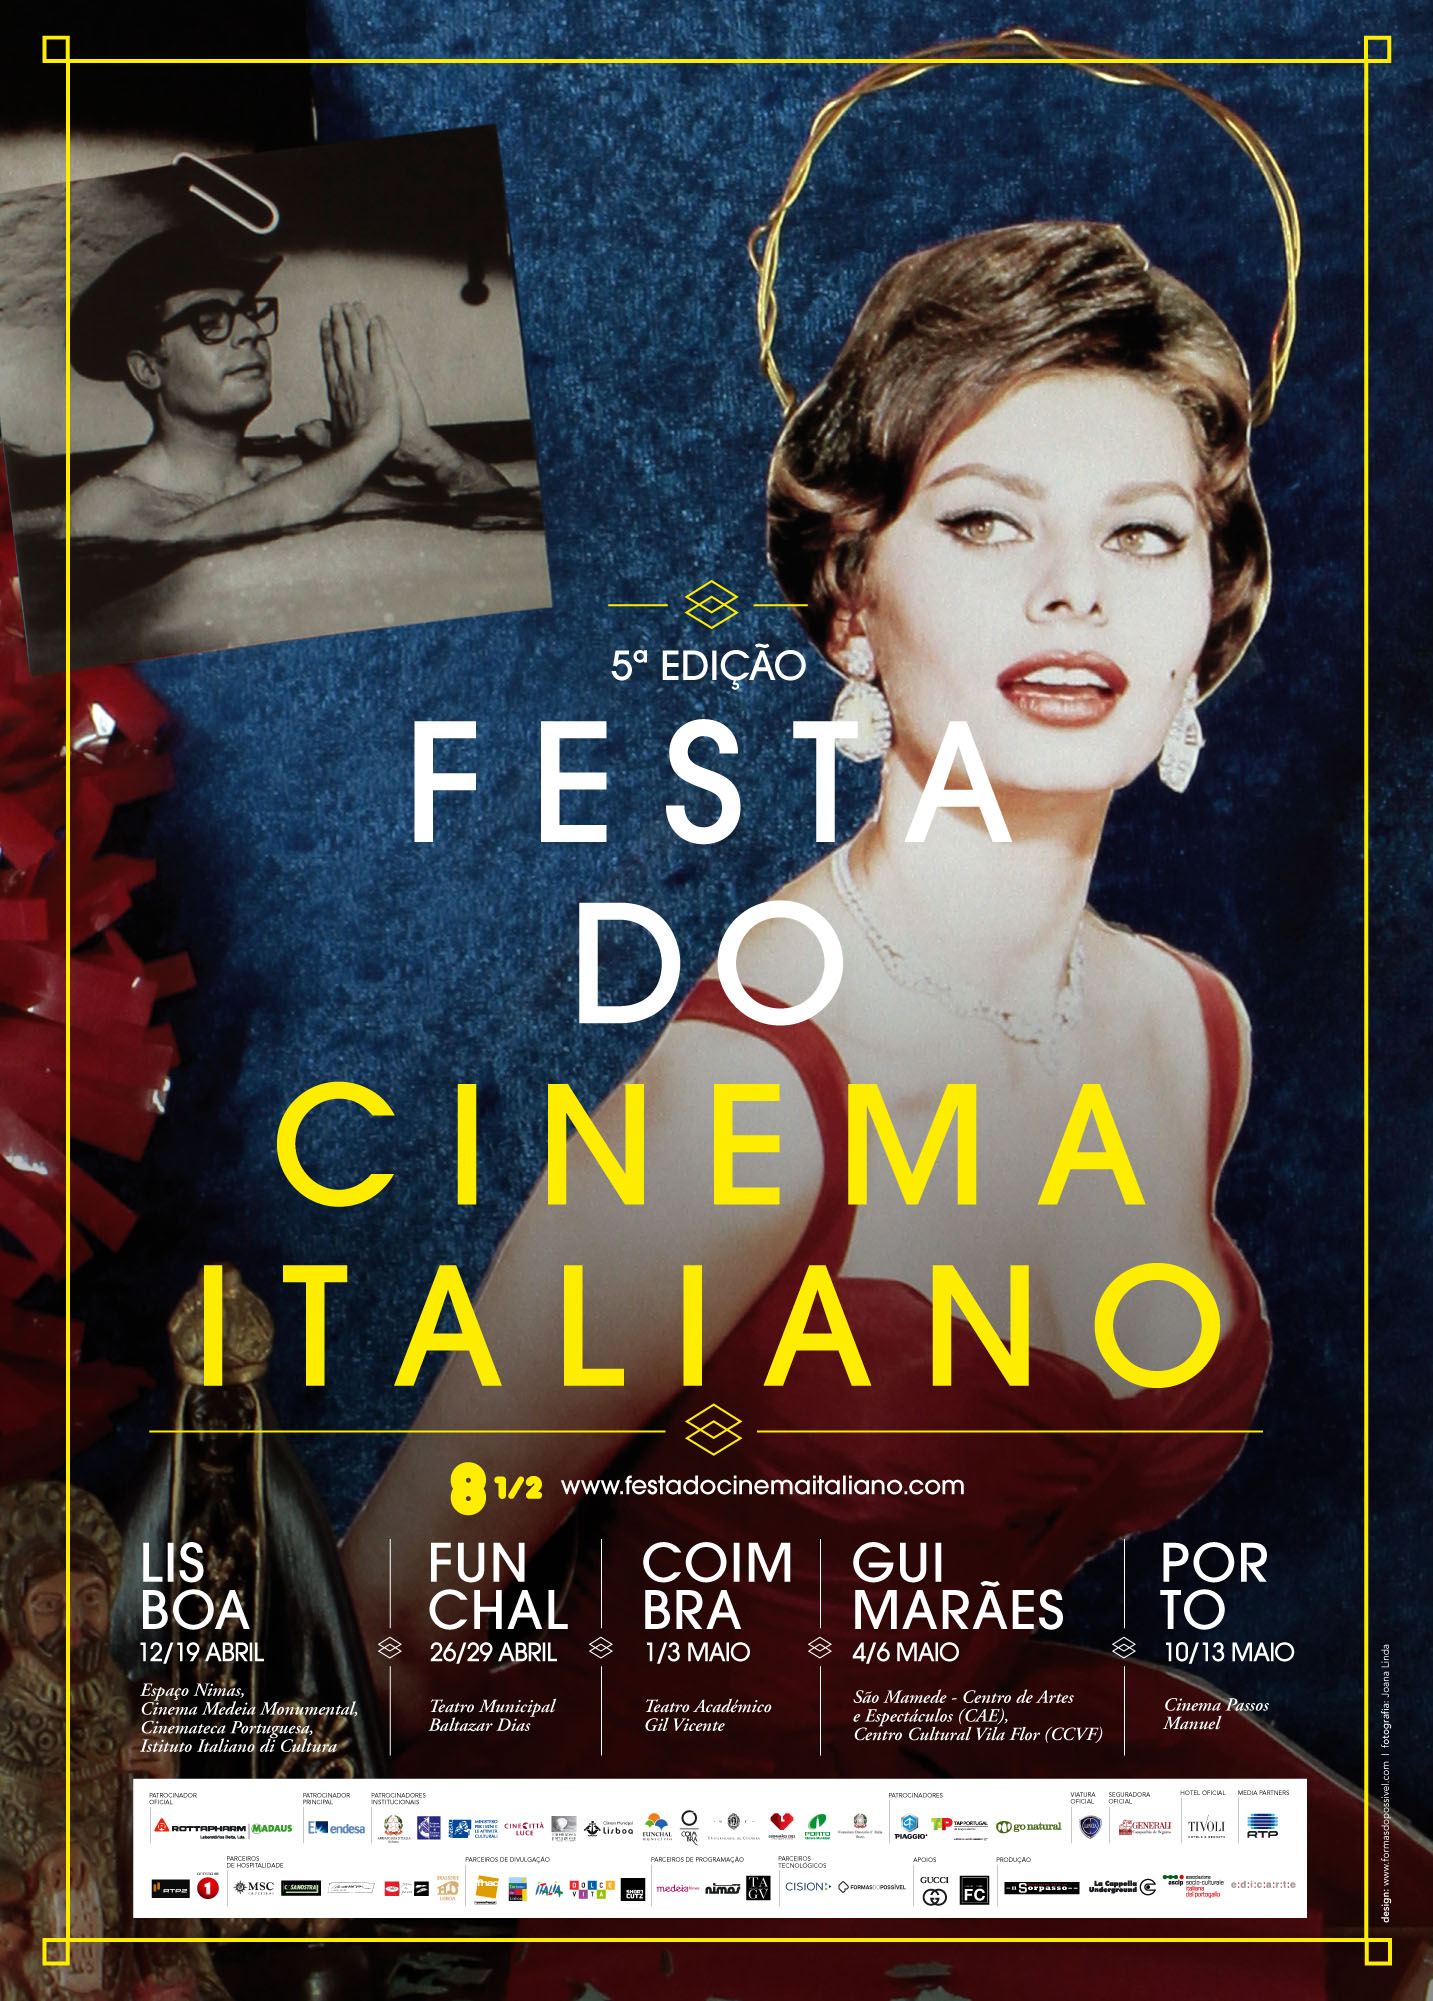 Cartaz 5ª ed. Festa do Cinema Italiano Lisbona 2012